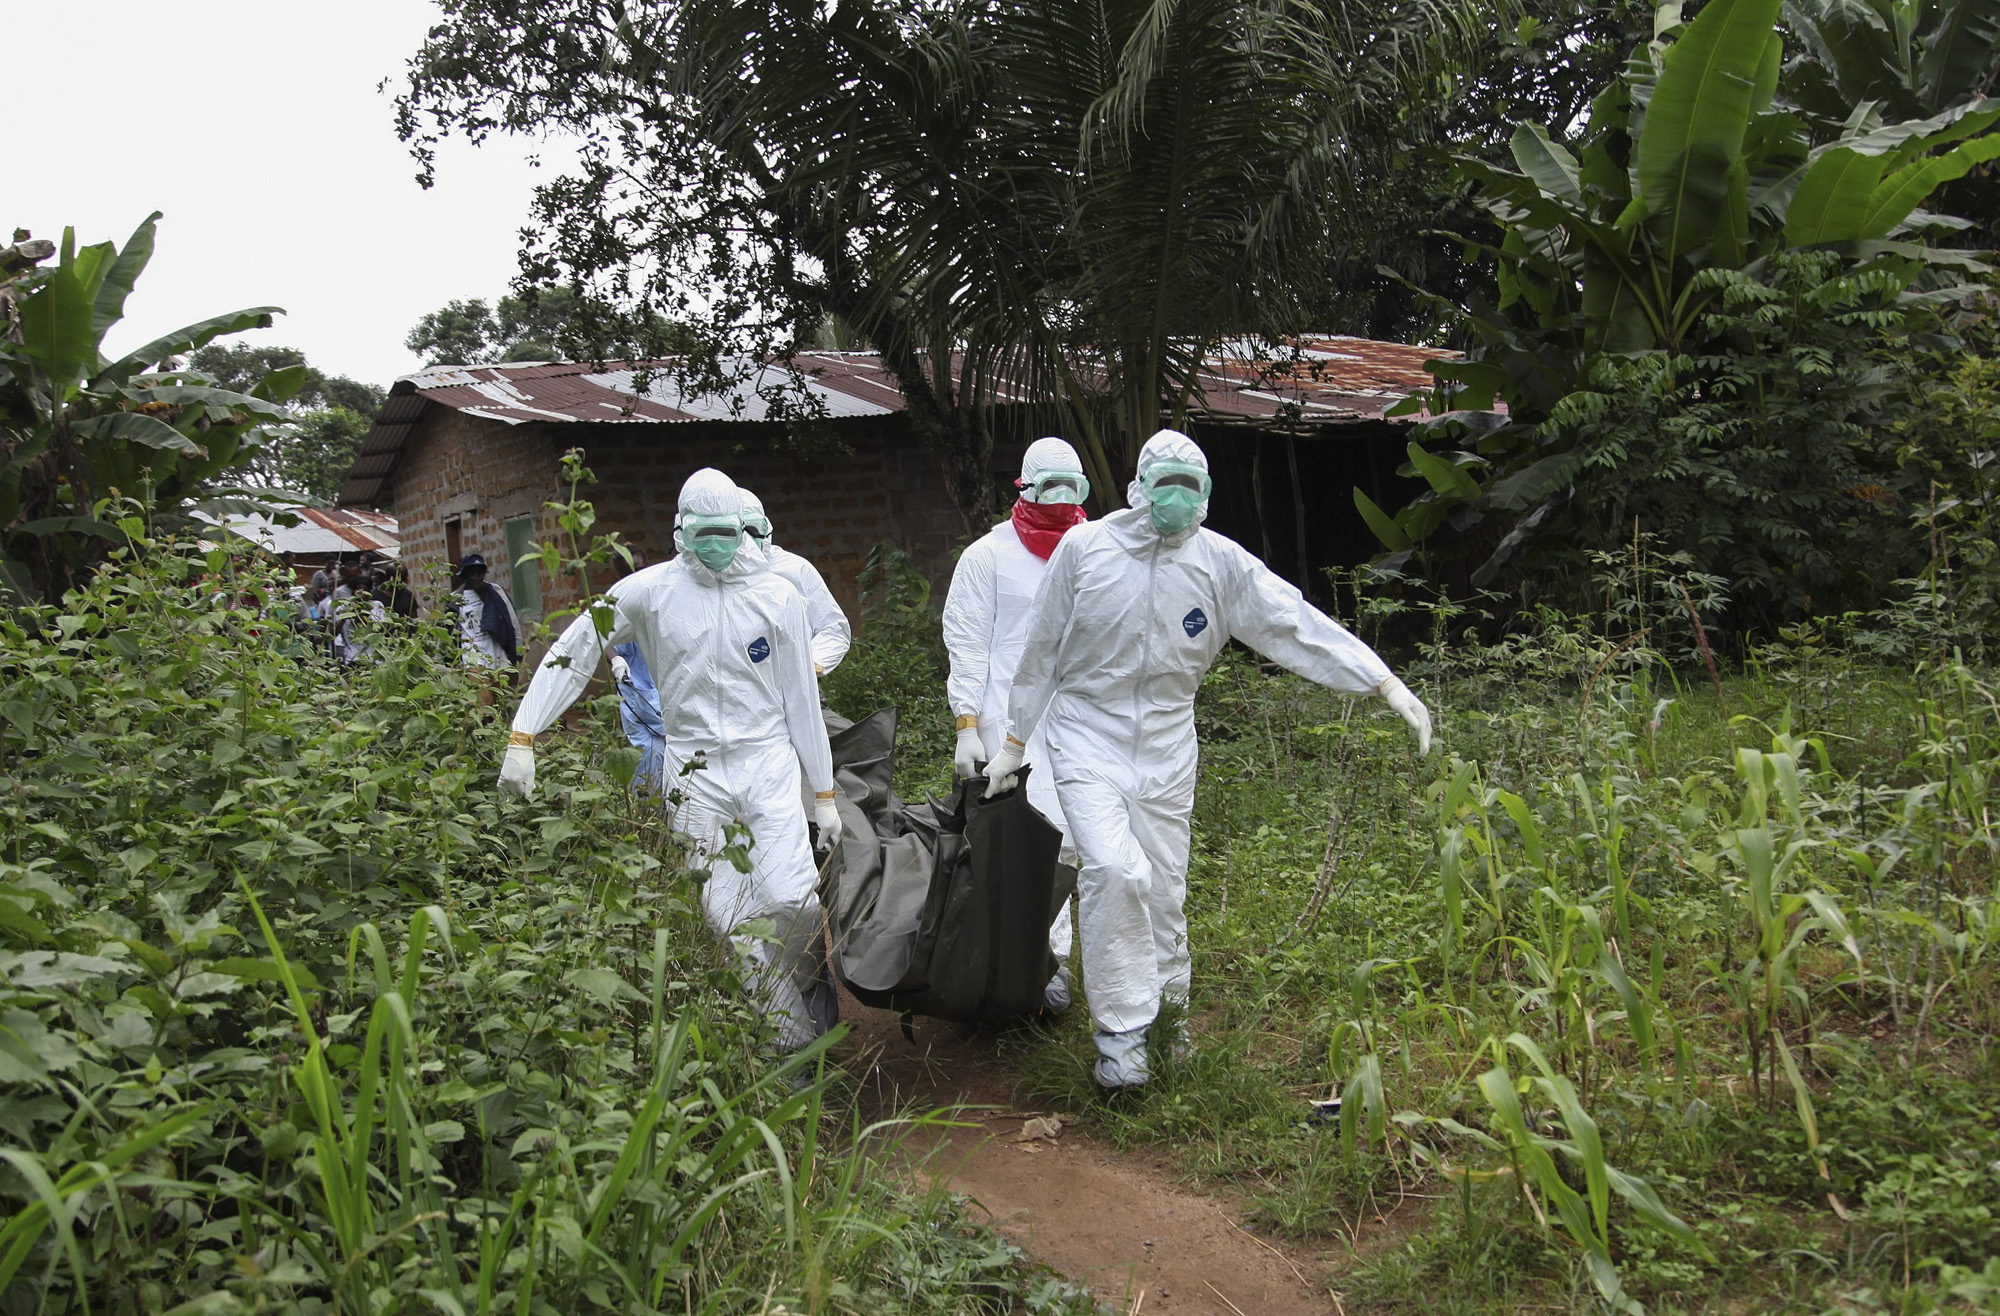 Liberian nurses carry the body of an Ebola victim on the way to bury them in the Banjor Community on the outskirts of Monrovia, Liberia, Aug. 6, 2014.